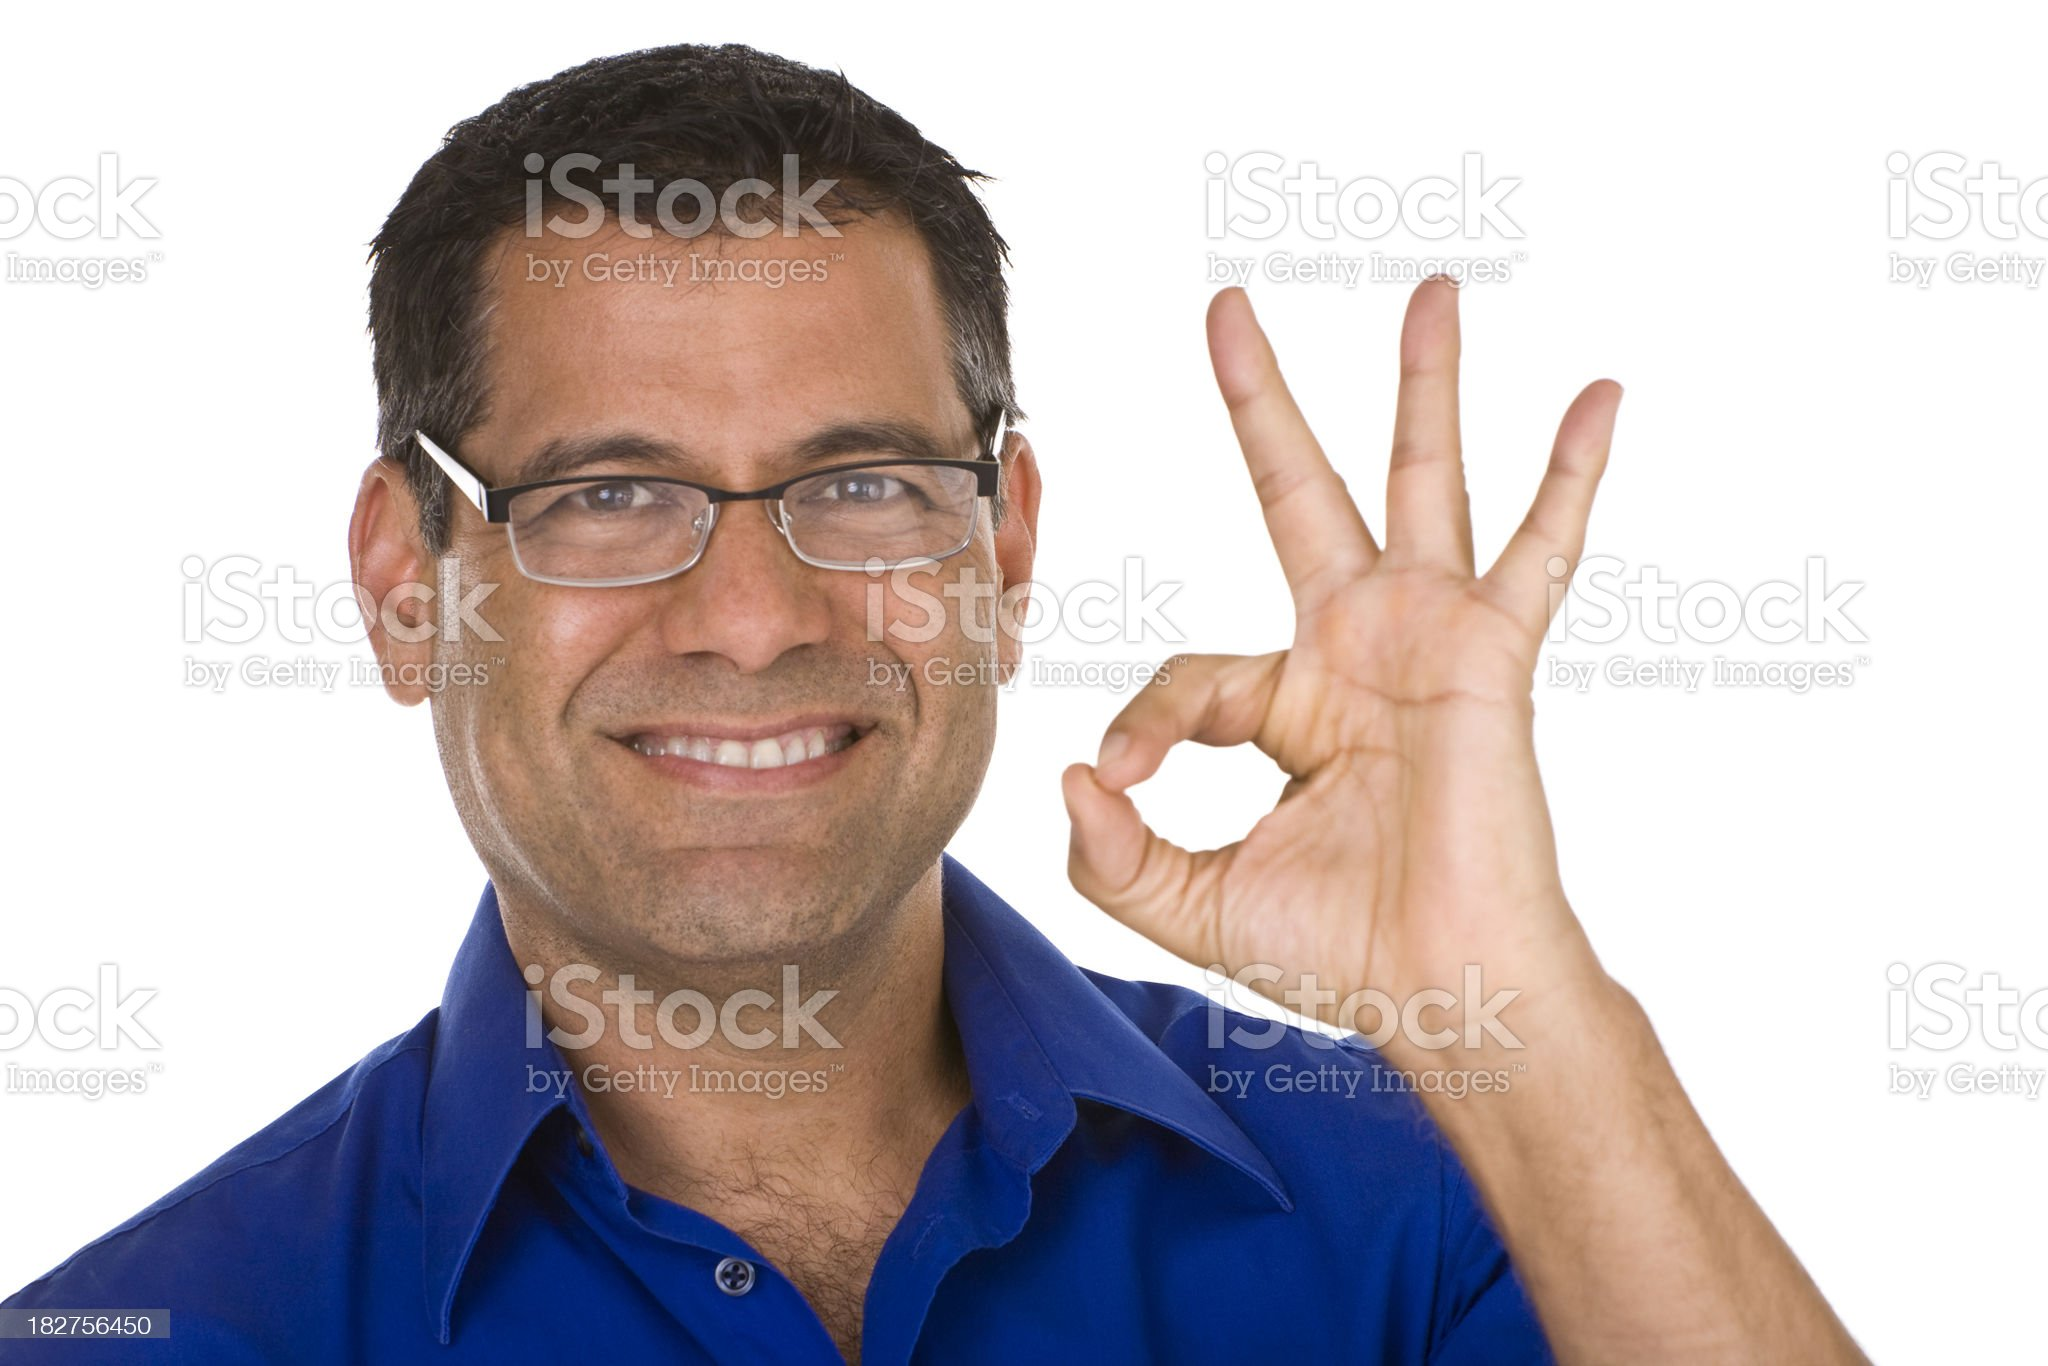 Smiling mature male wearing glasses gesturing okay sign royalty-free stock photo